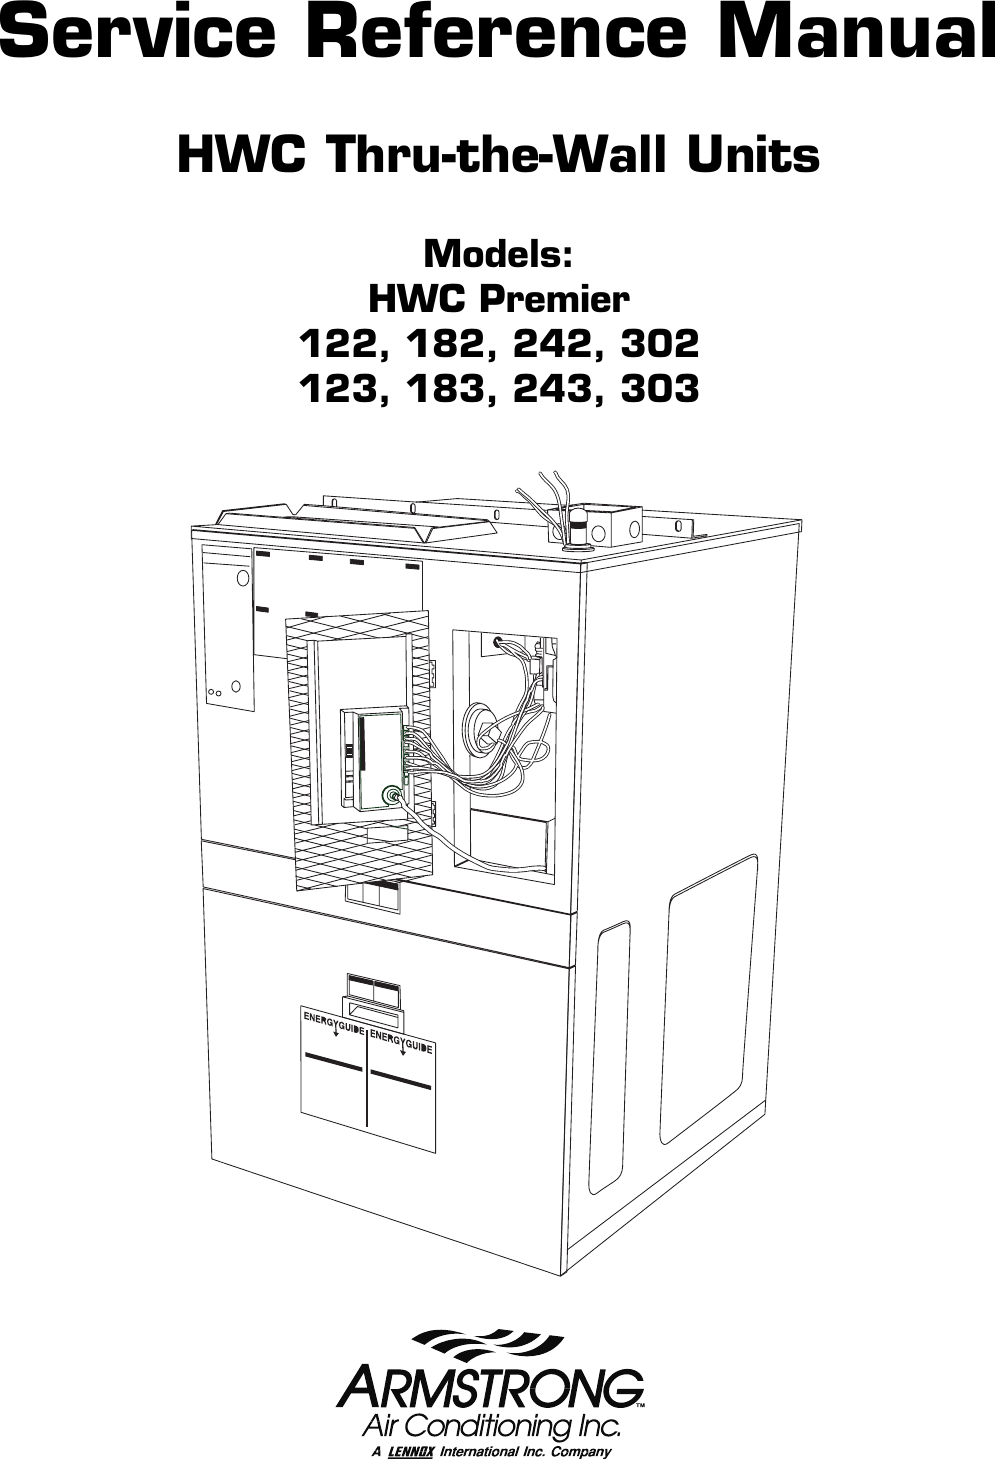 Armstrong World Industries Hwc Premier 183 Users Manual Toc Fenwal Automatic Ignition Module Wiring Diagram